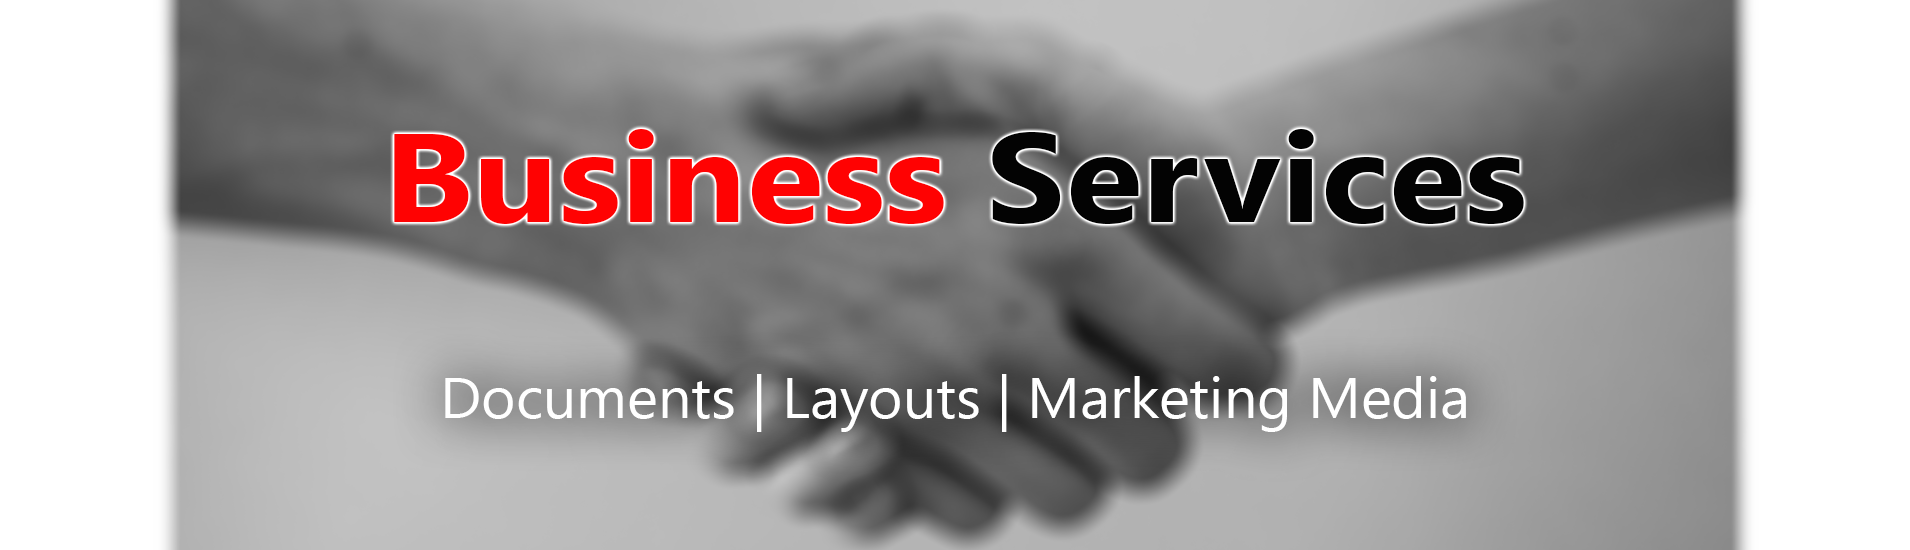 Business Services Header